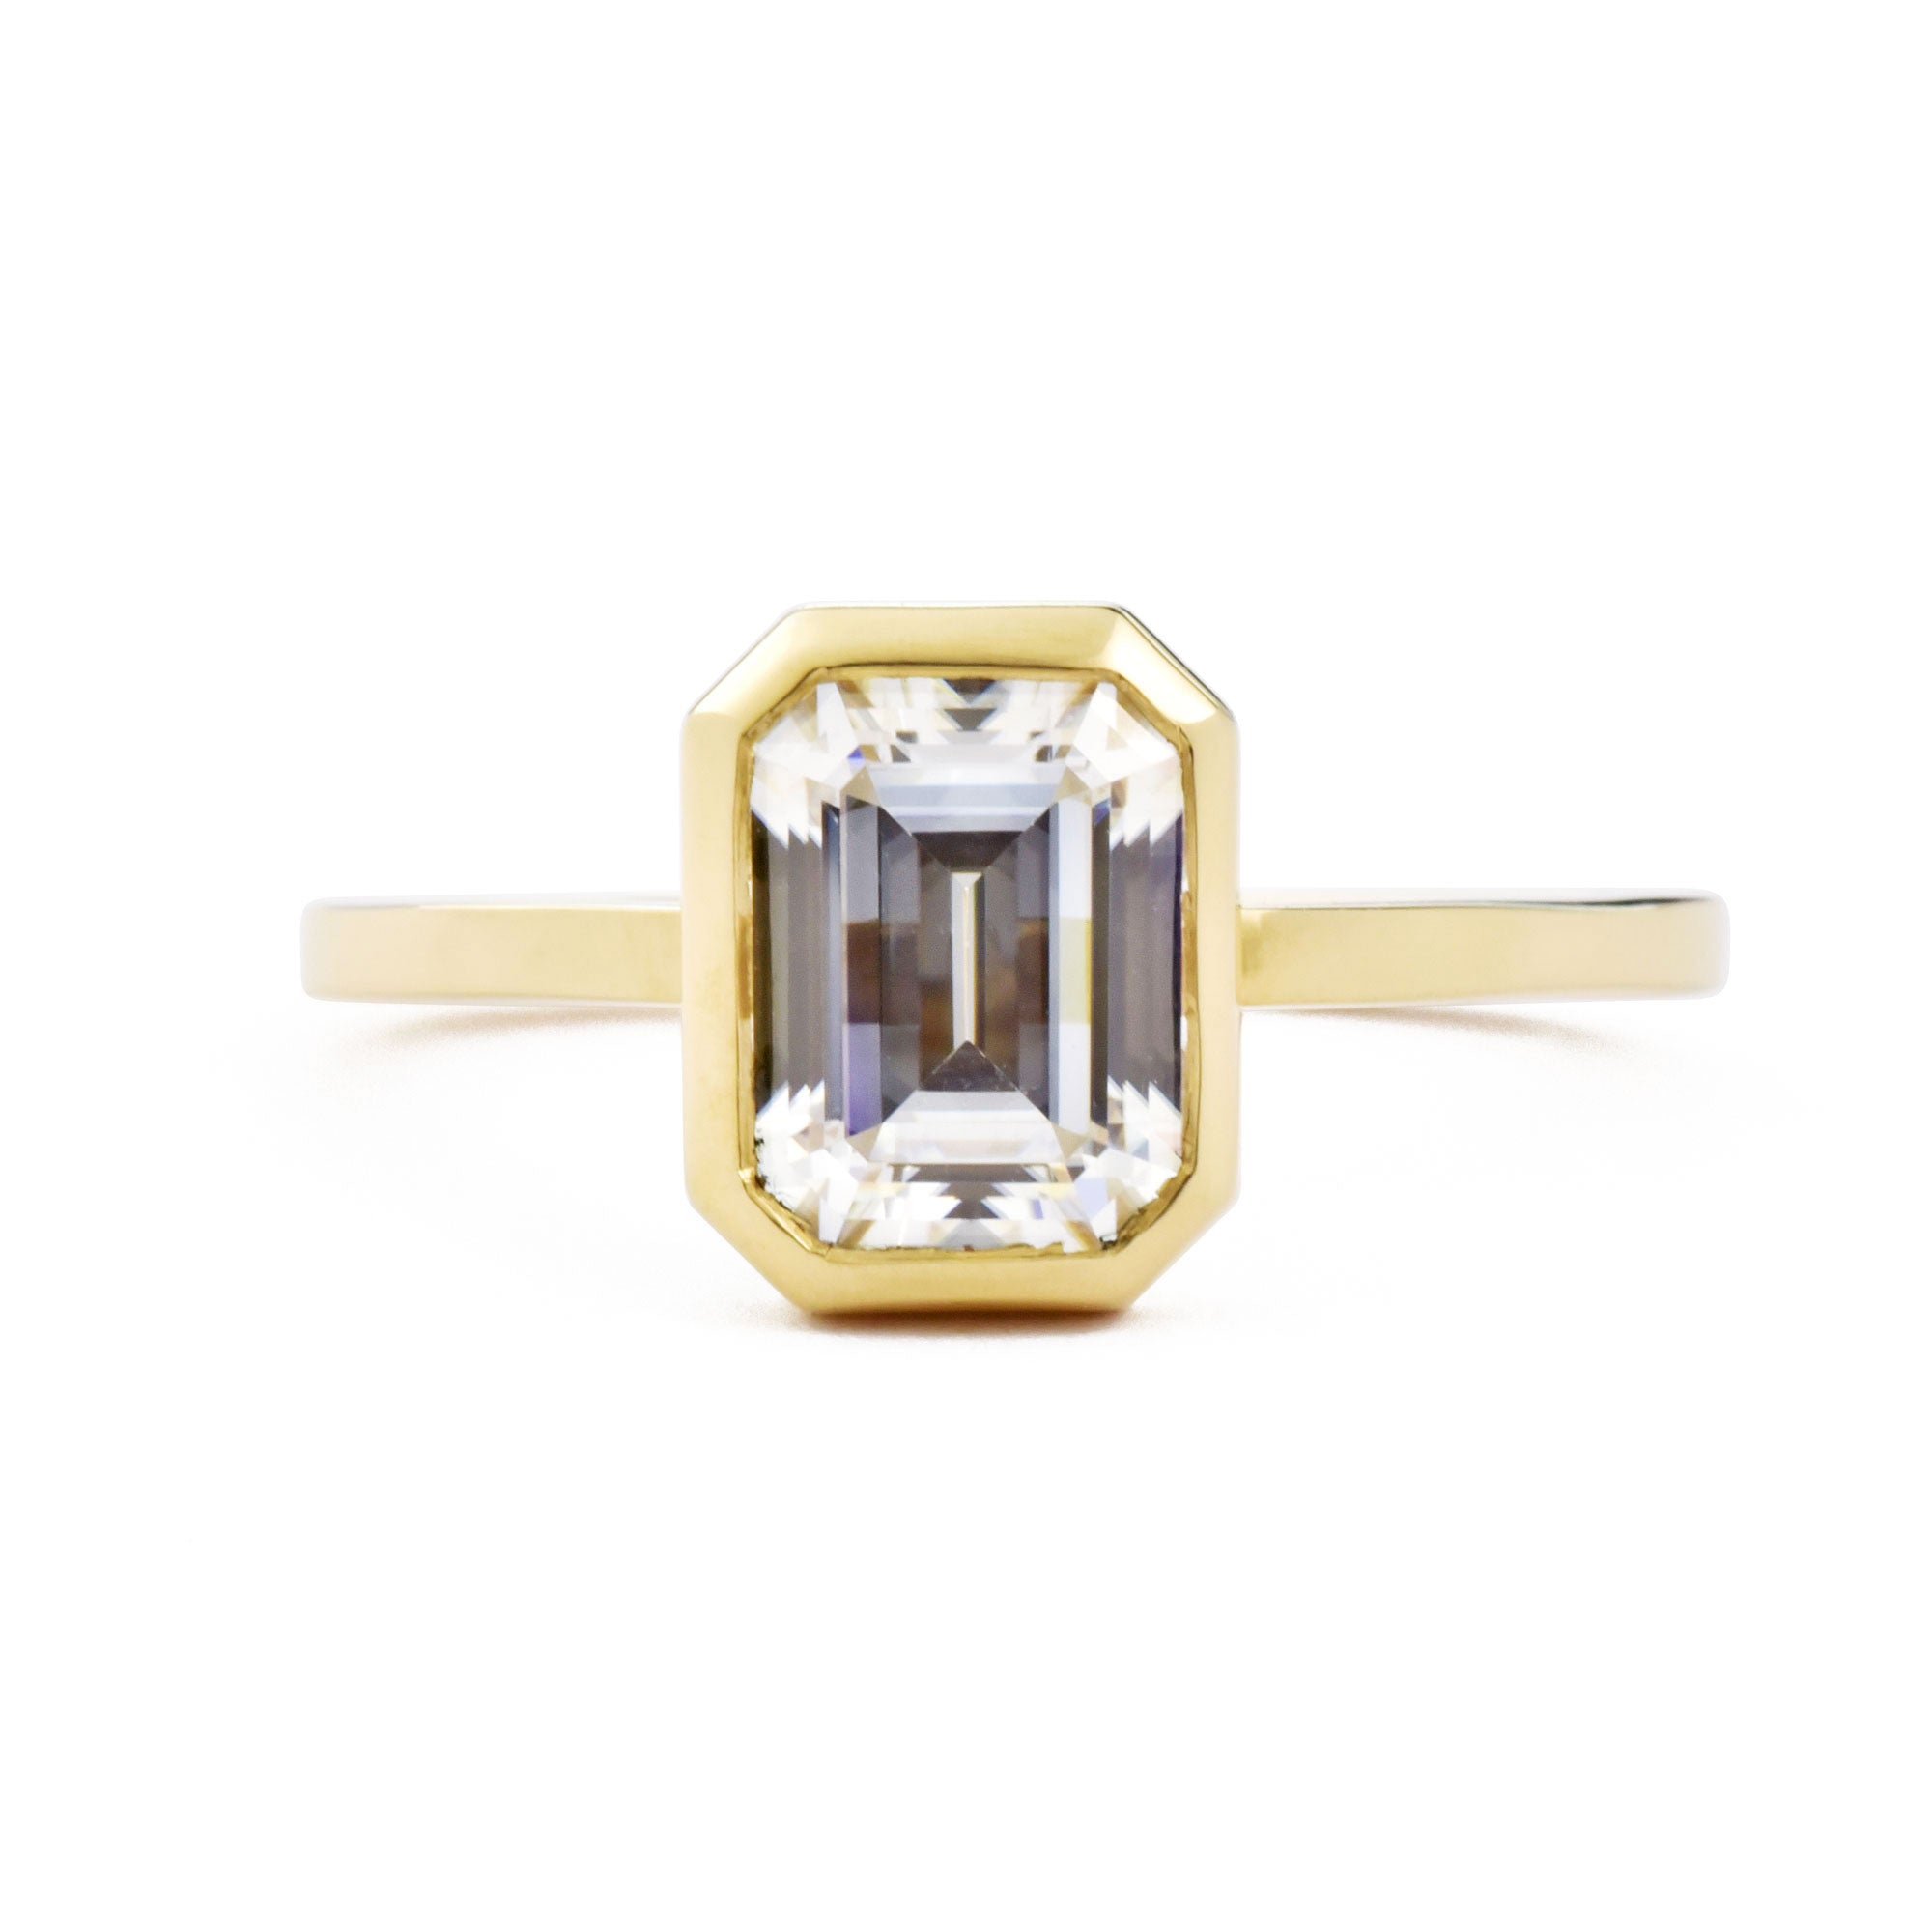 Aura Open Bezel Emerald Cut 1.75ct Moissanite Engagement Ring